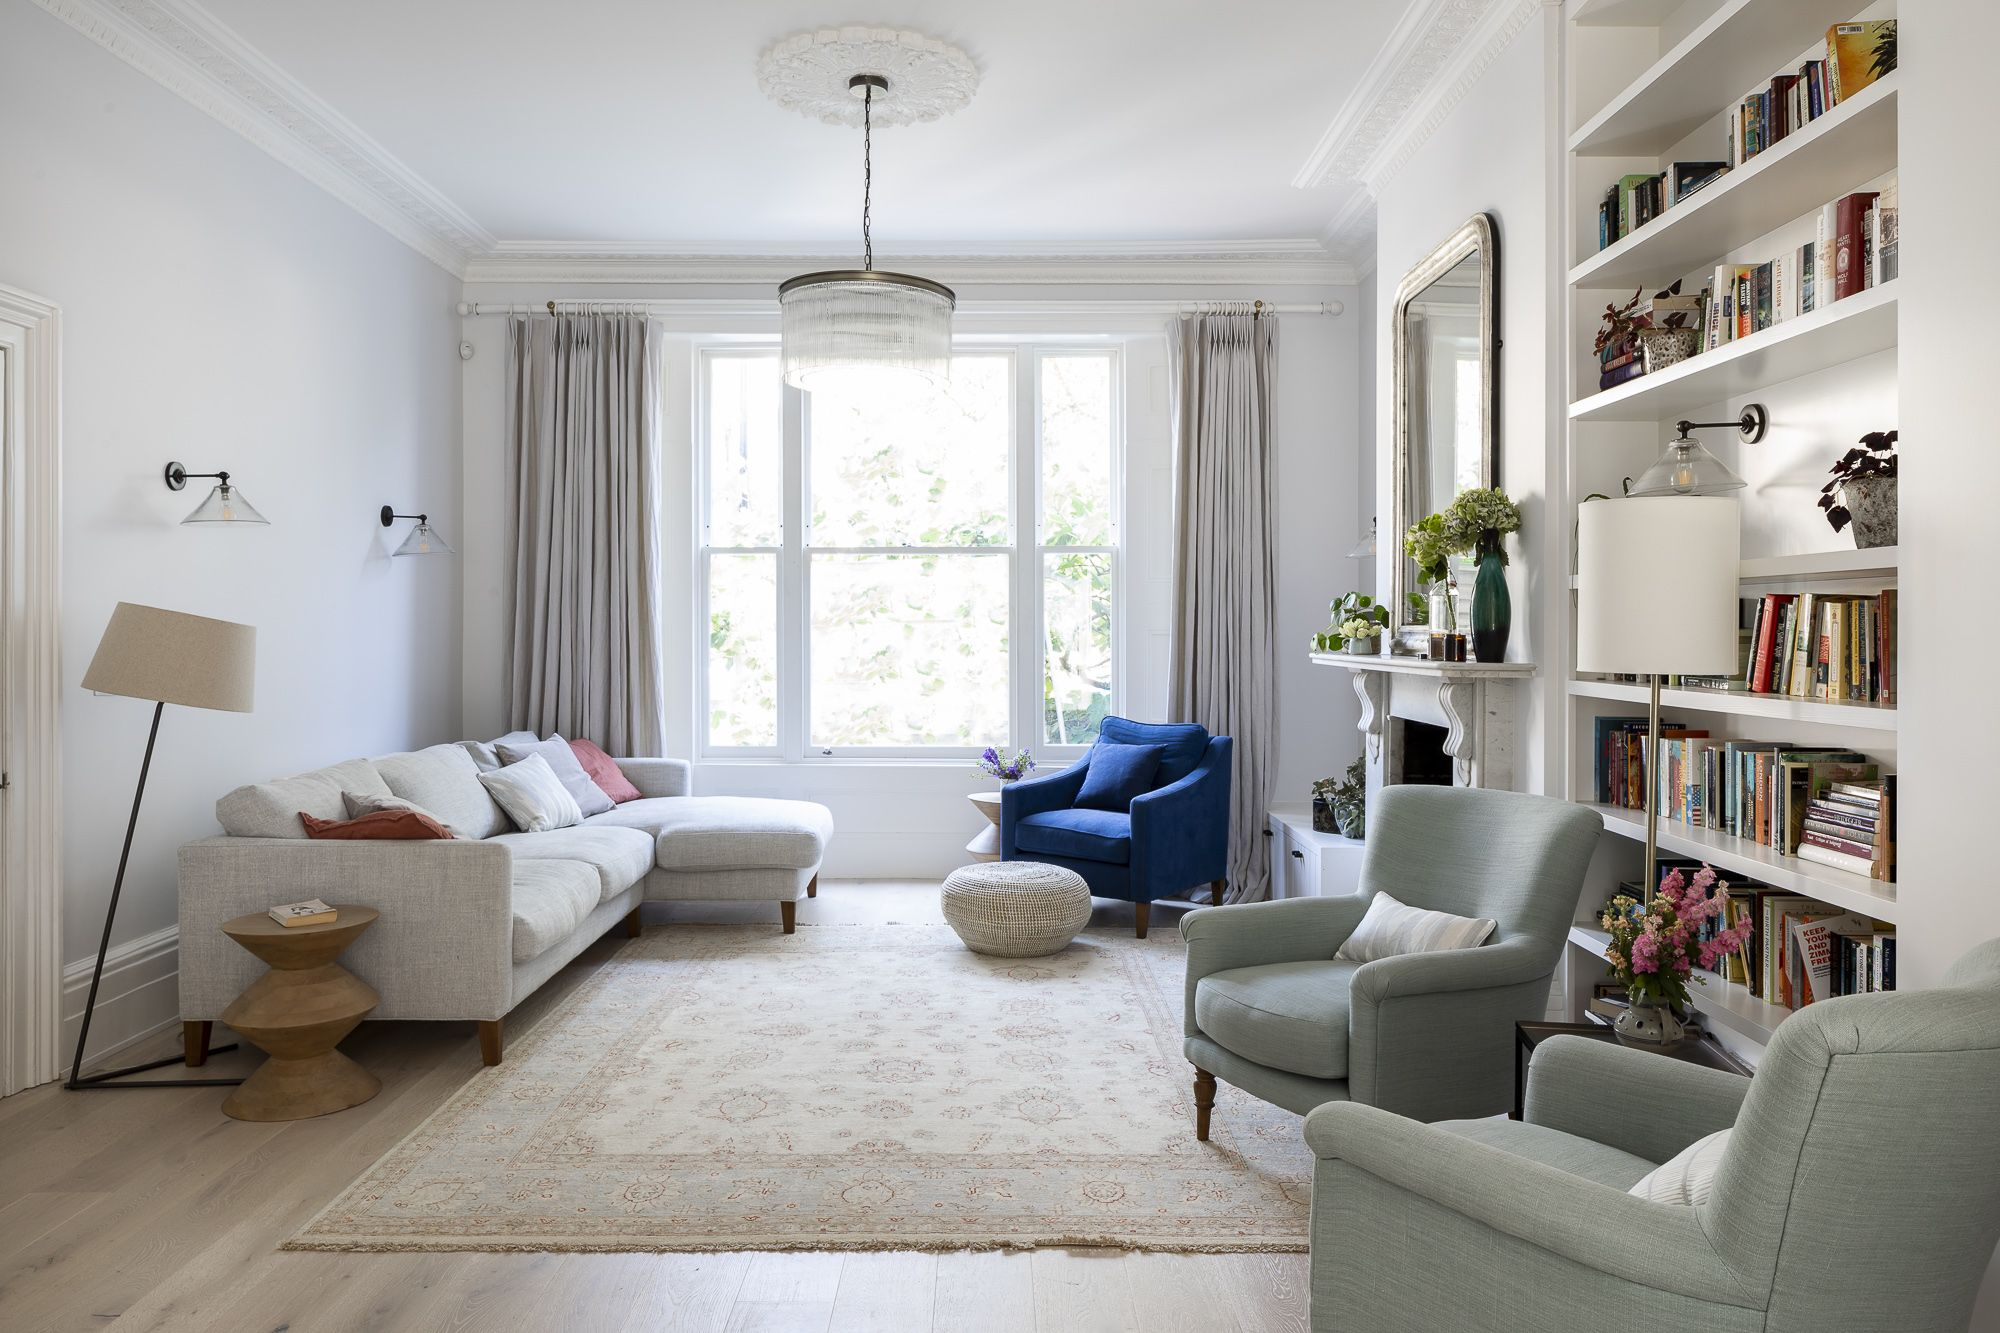 Interior Design By Imperfect Interiors In This Double Aspect Open